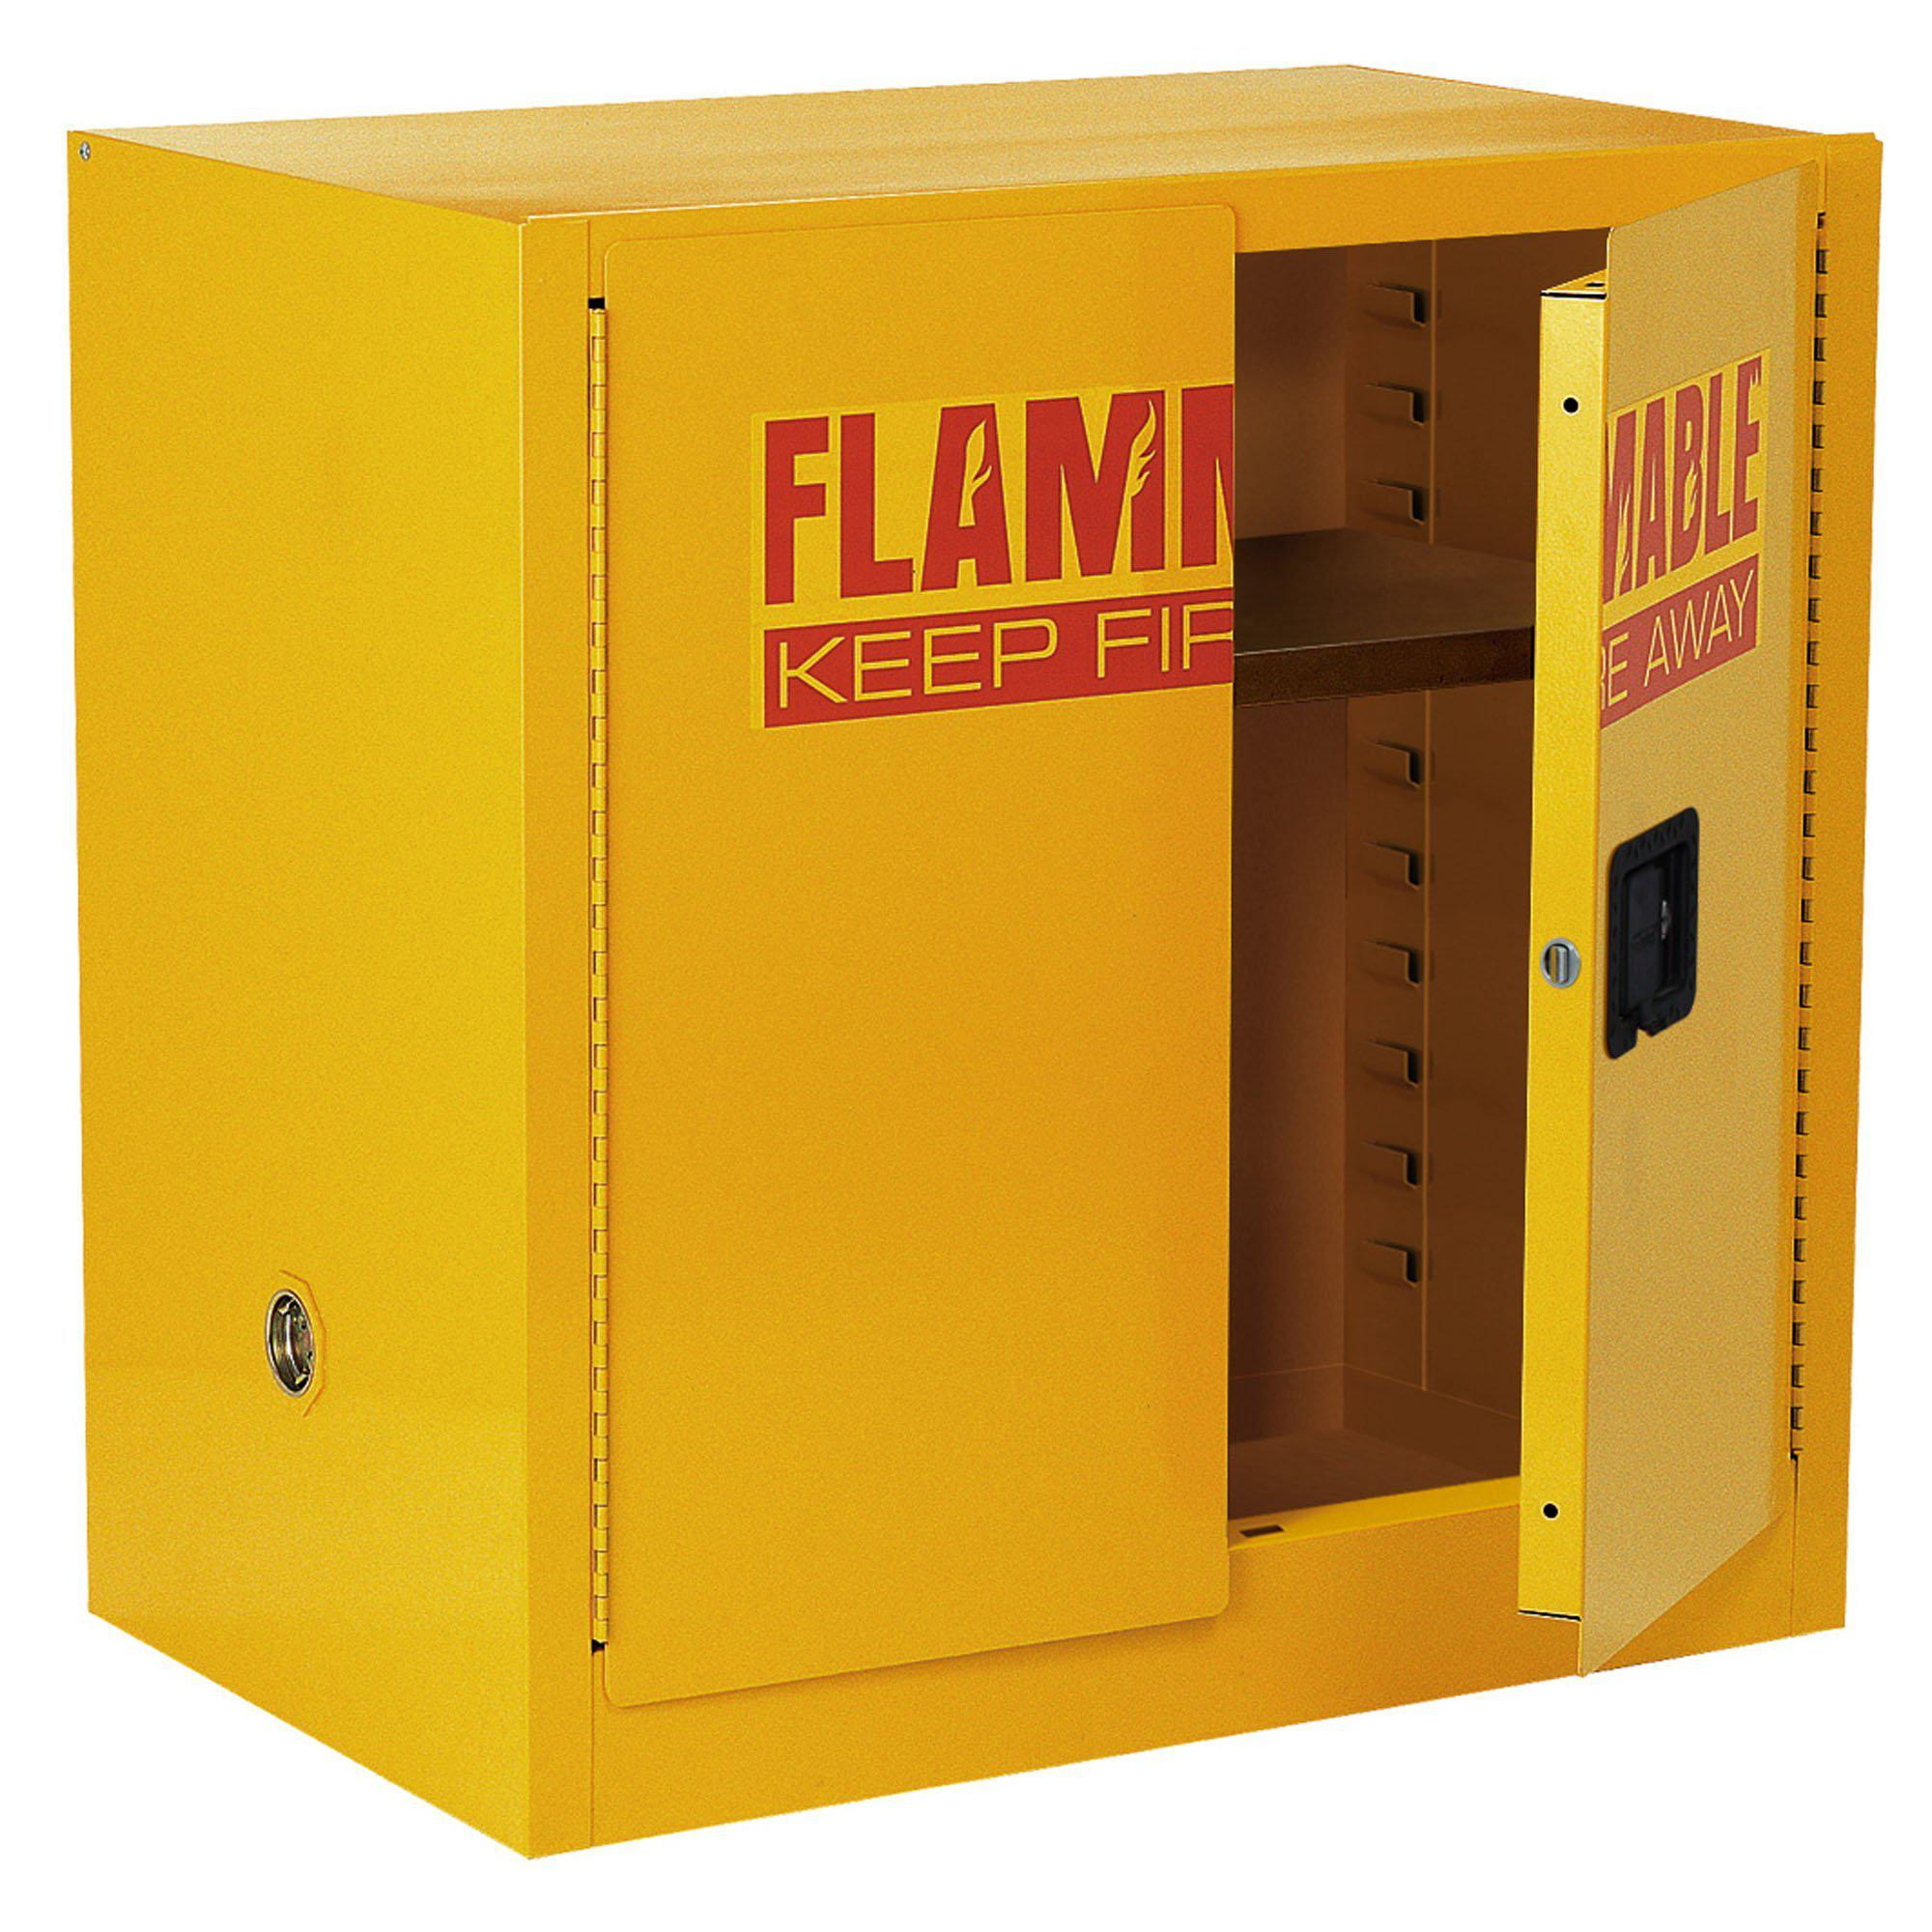 Compact Flammable Safety Cabinet with Double Door, Manual Close, 22 Gallon Capacity, Safety Yellow, 35 x 22 x 35